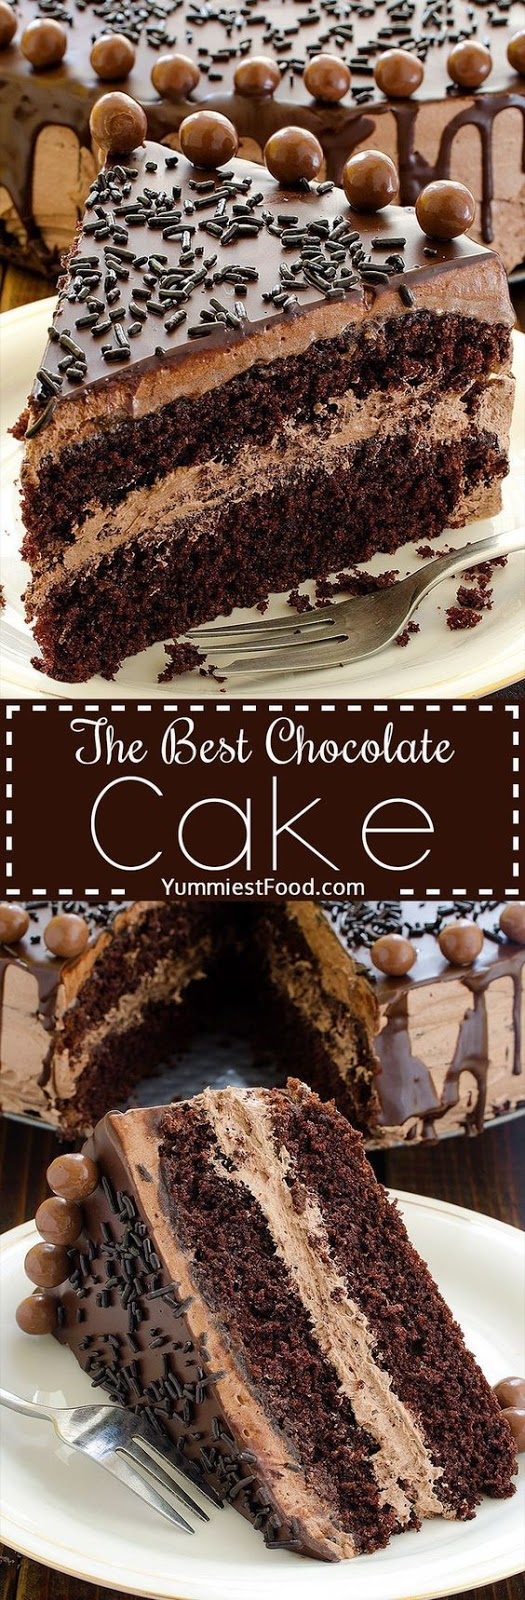 Http Yummiestfood Com The Best Chocolate Cake